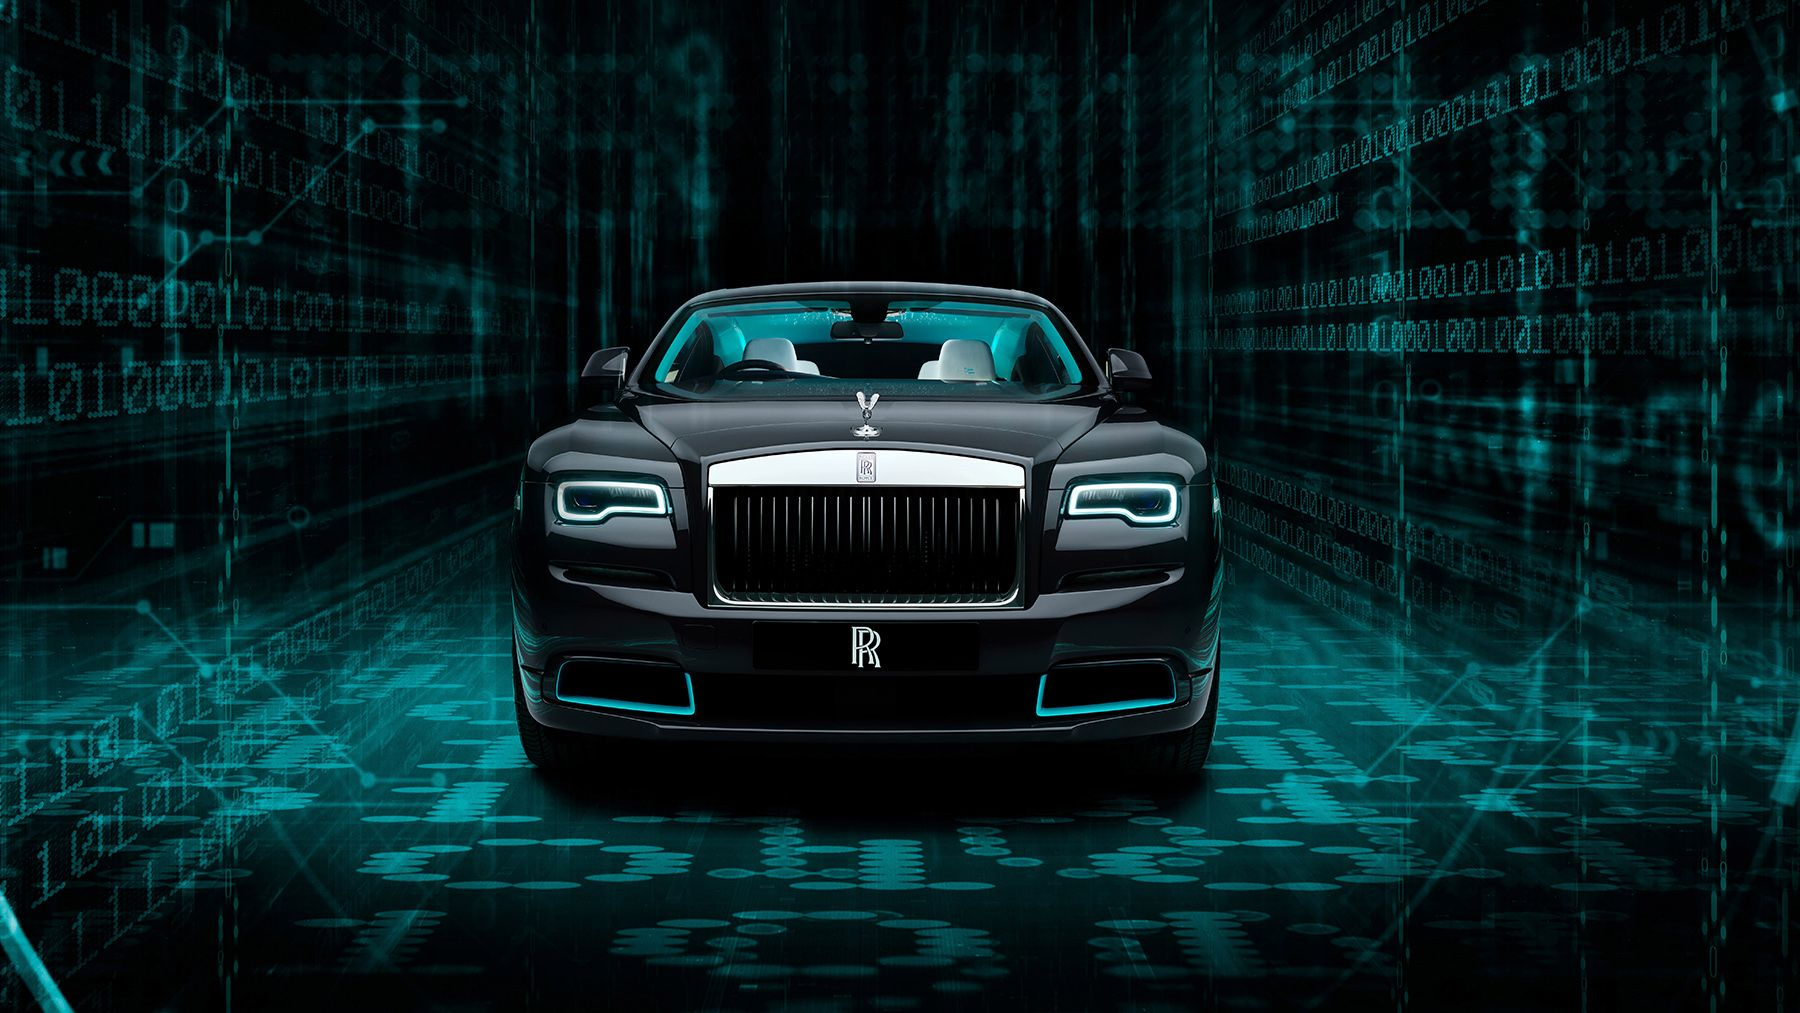 Rolls Royce Wraith Kryptos Holds Encrypted Message For Owners